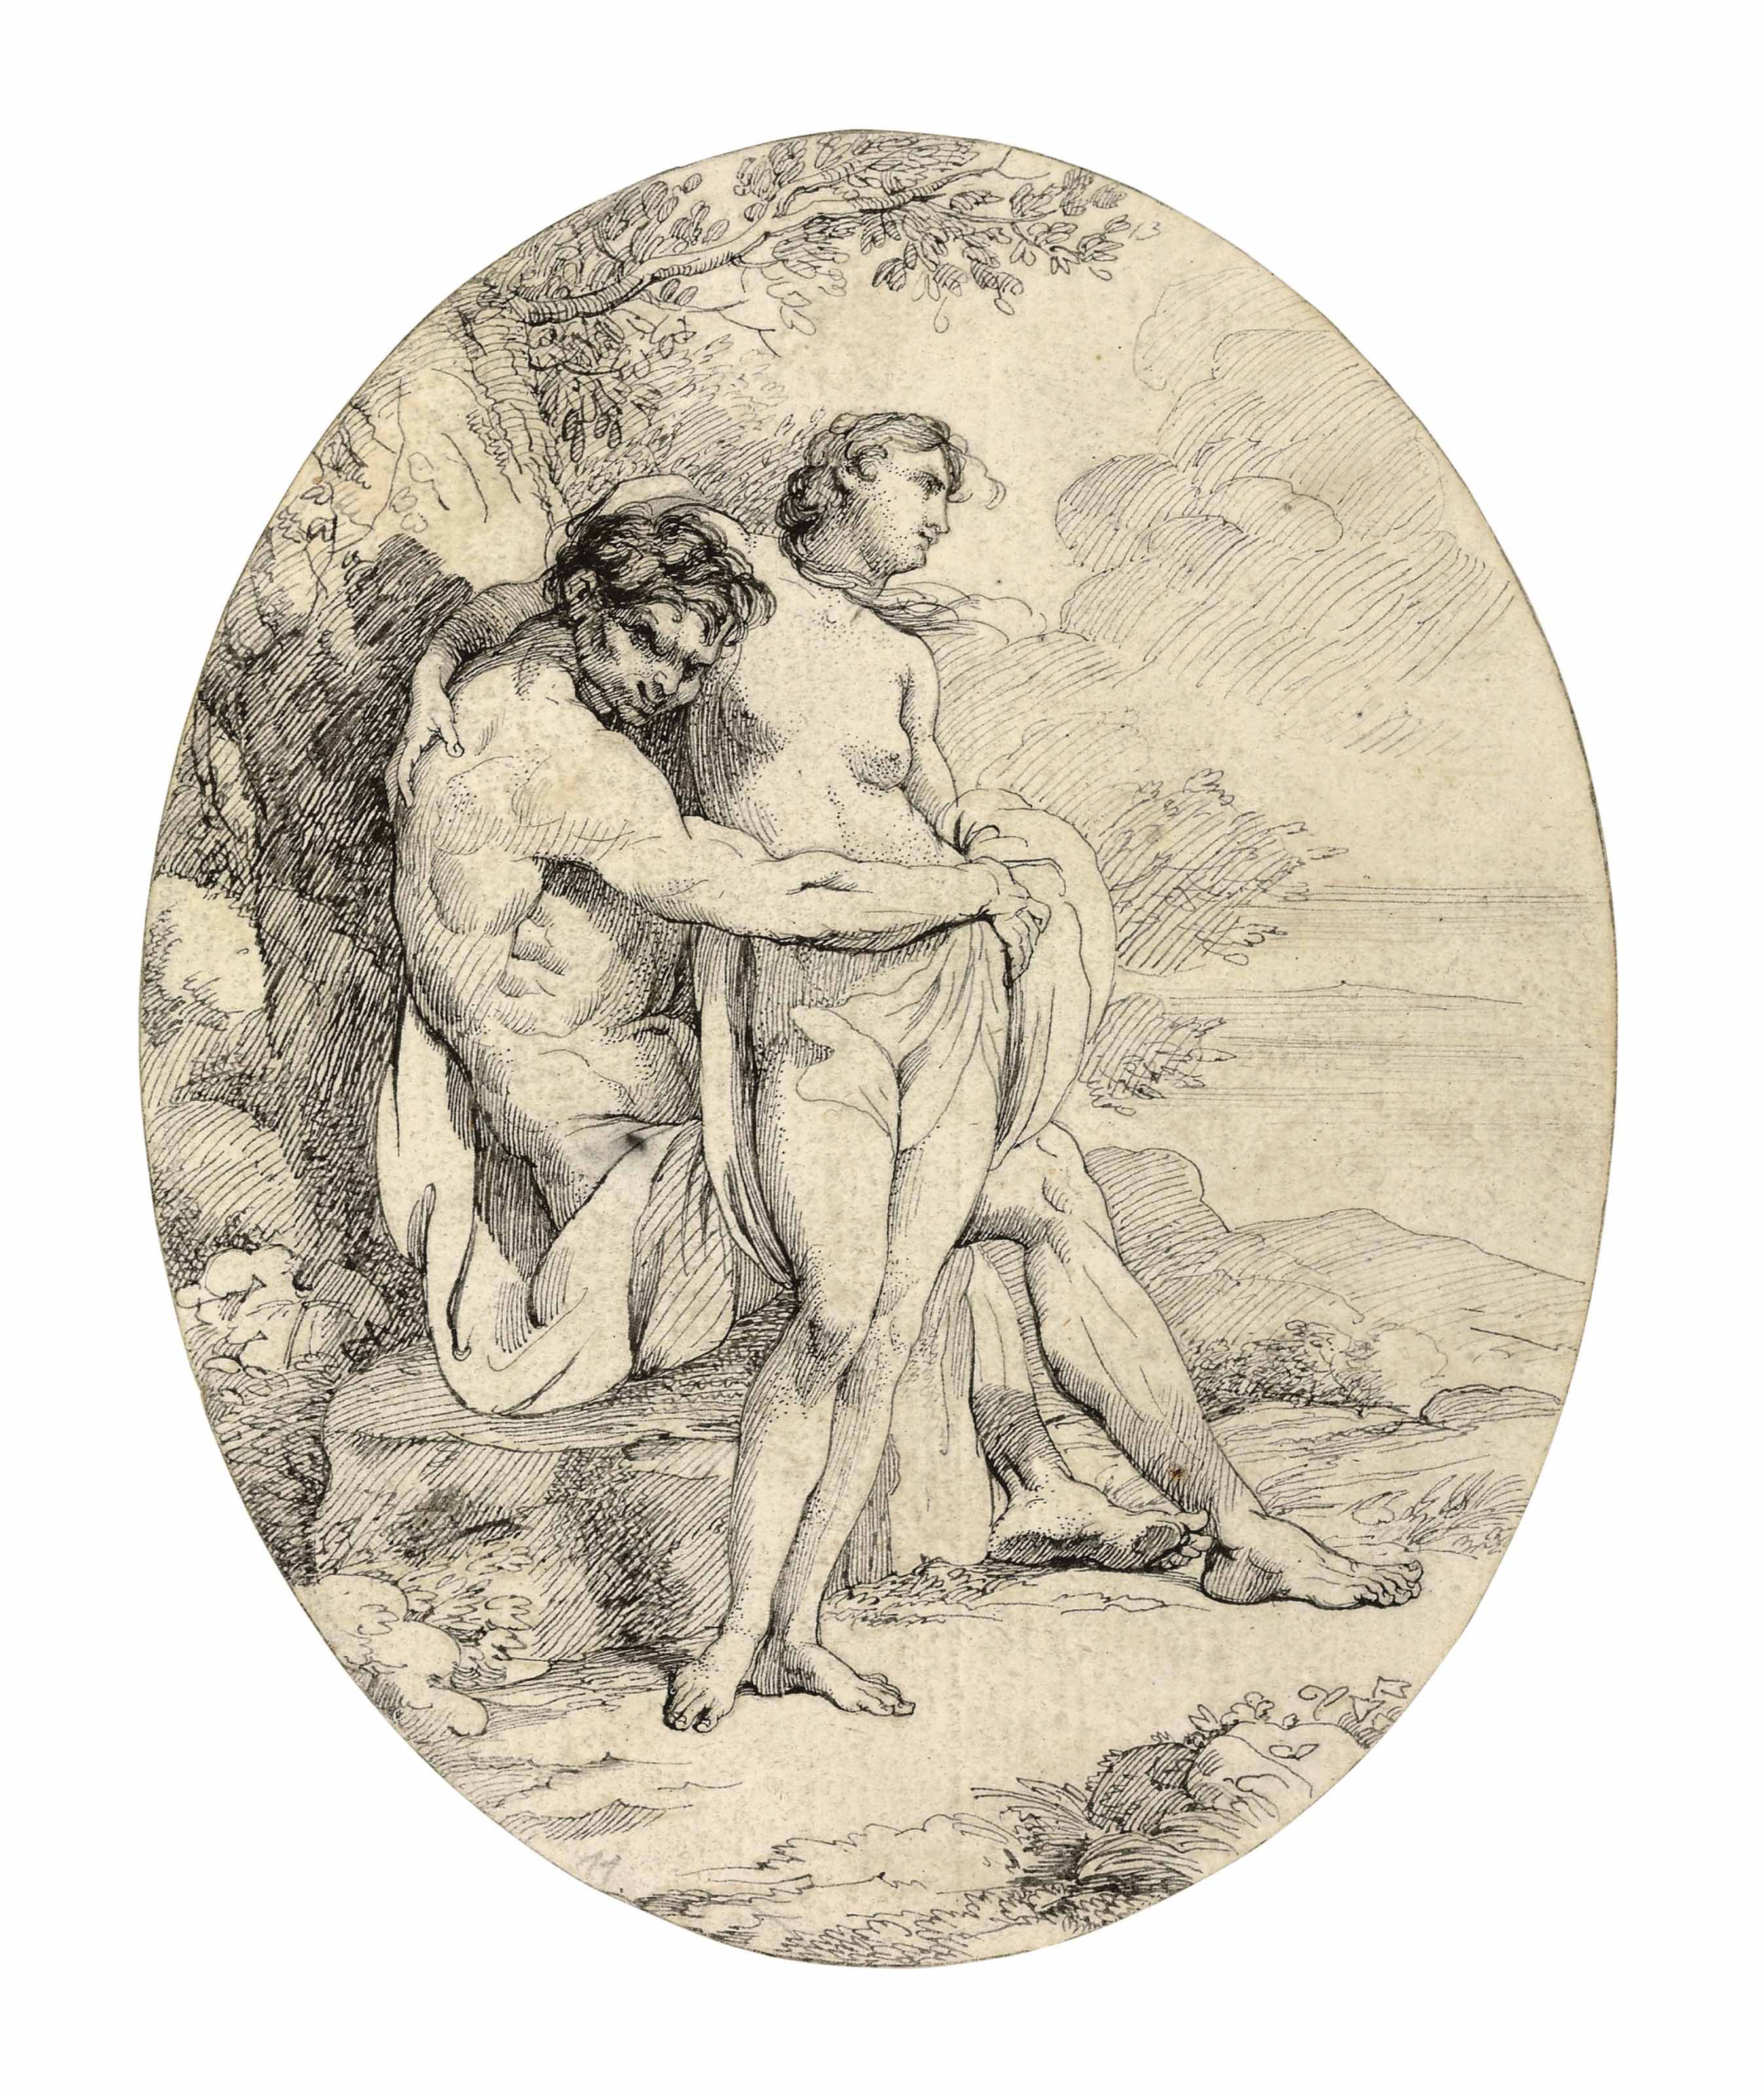 A satyr embracing a woman